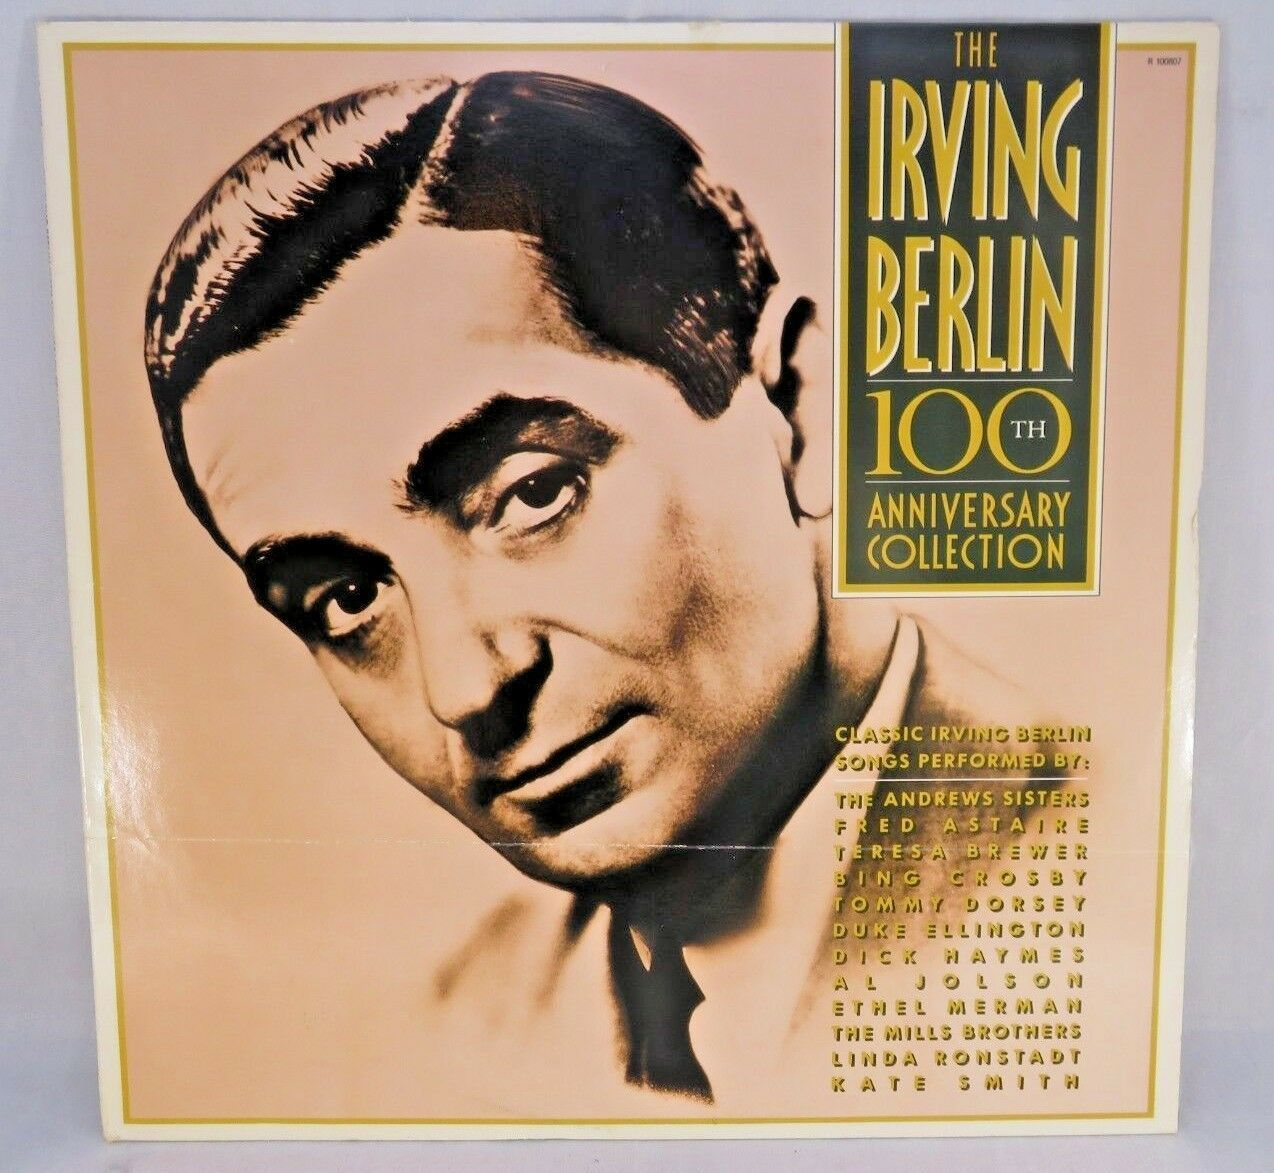 Primary image for Irving Berlin 100th Anniversary Collection LP NM Vinyl Fred Astaire Puttin Ritz